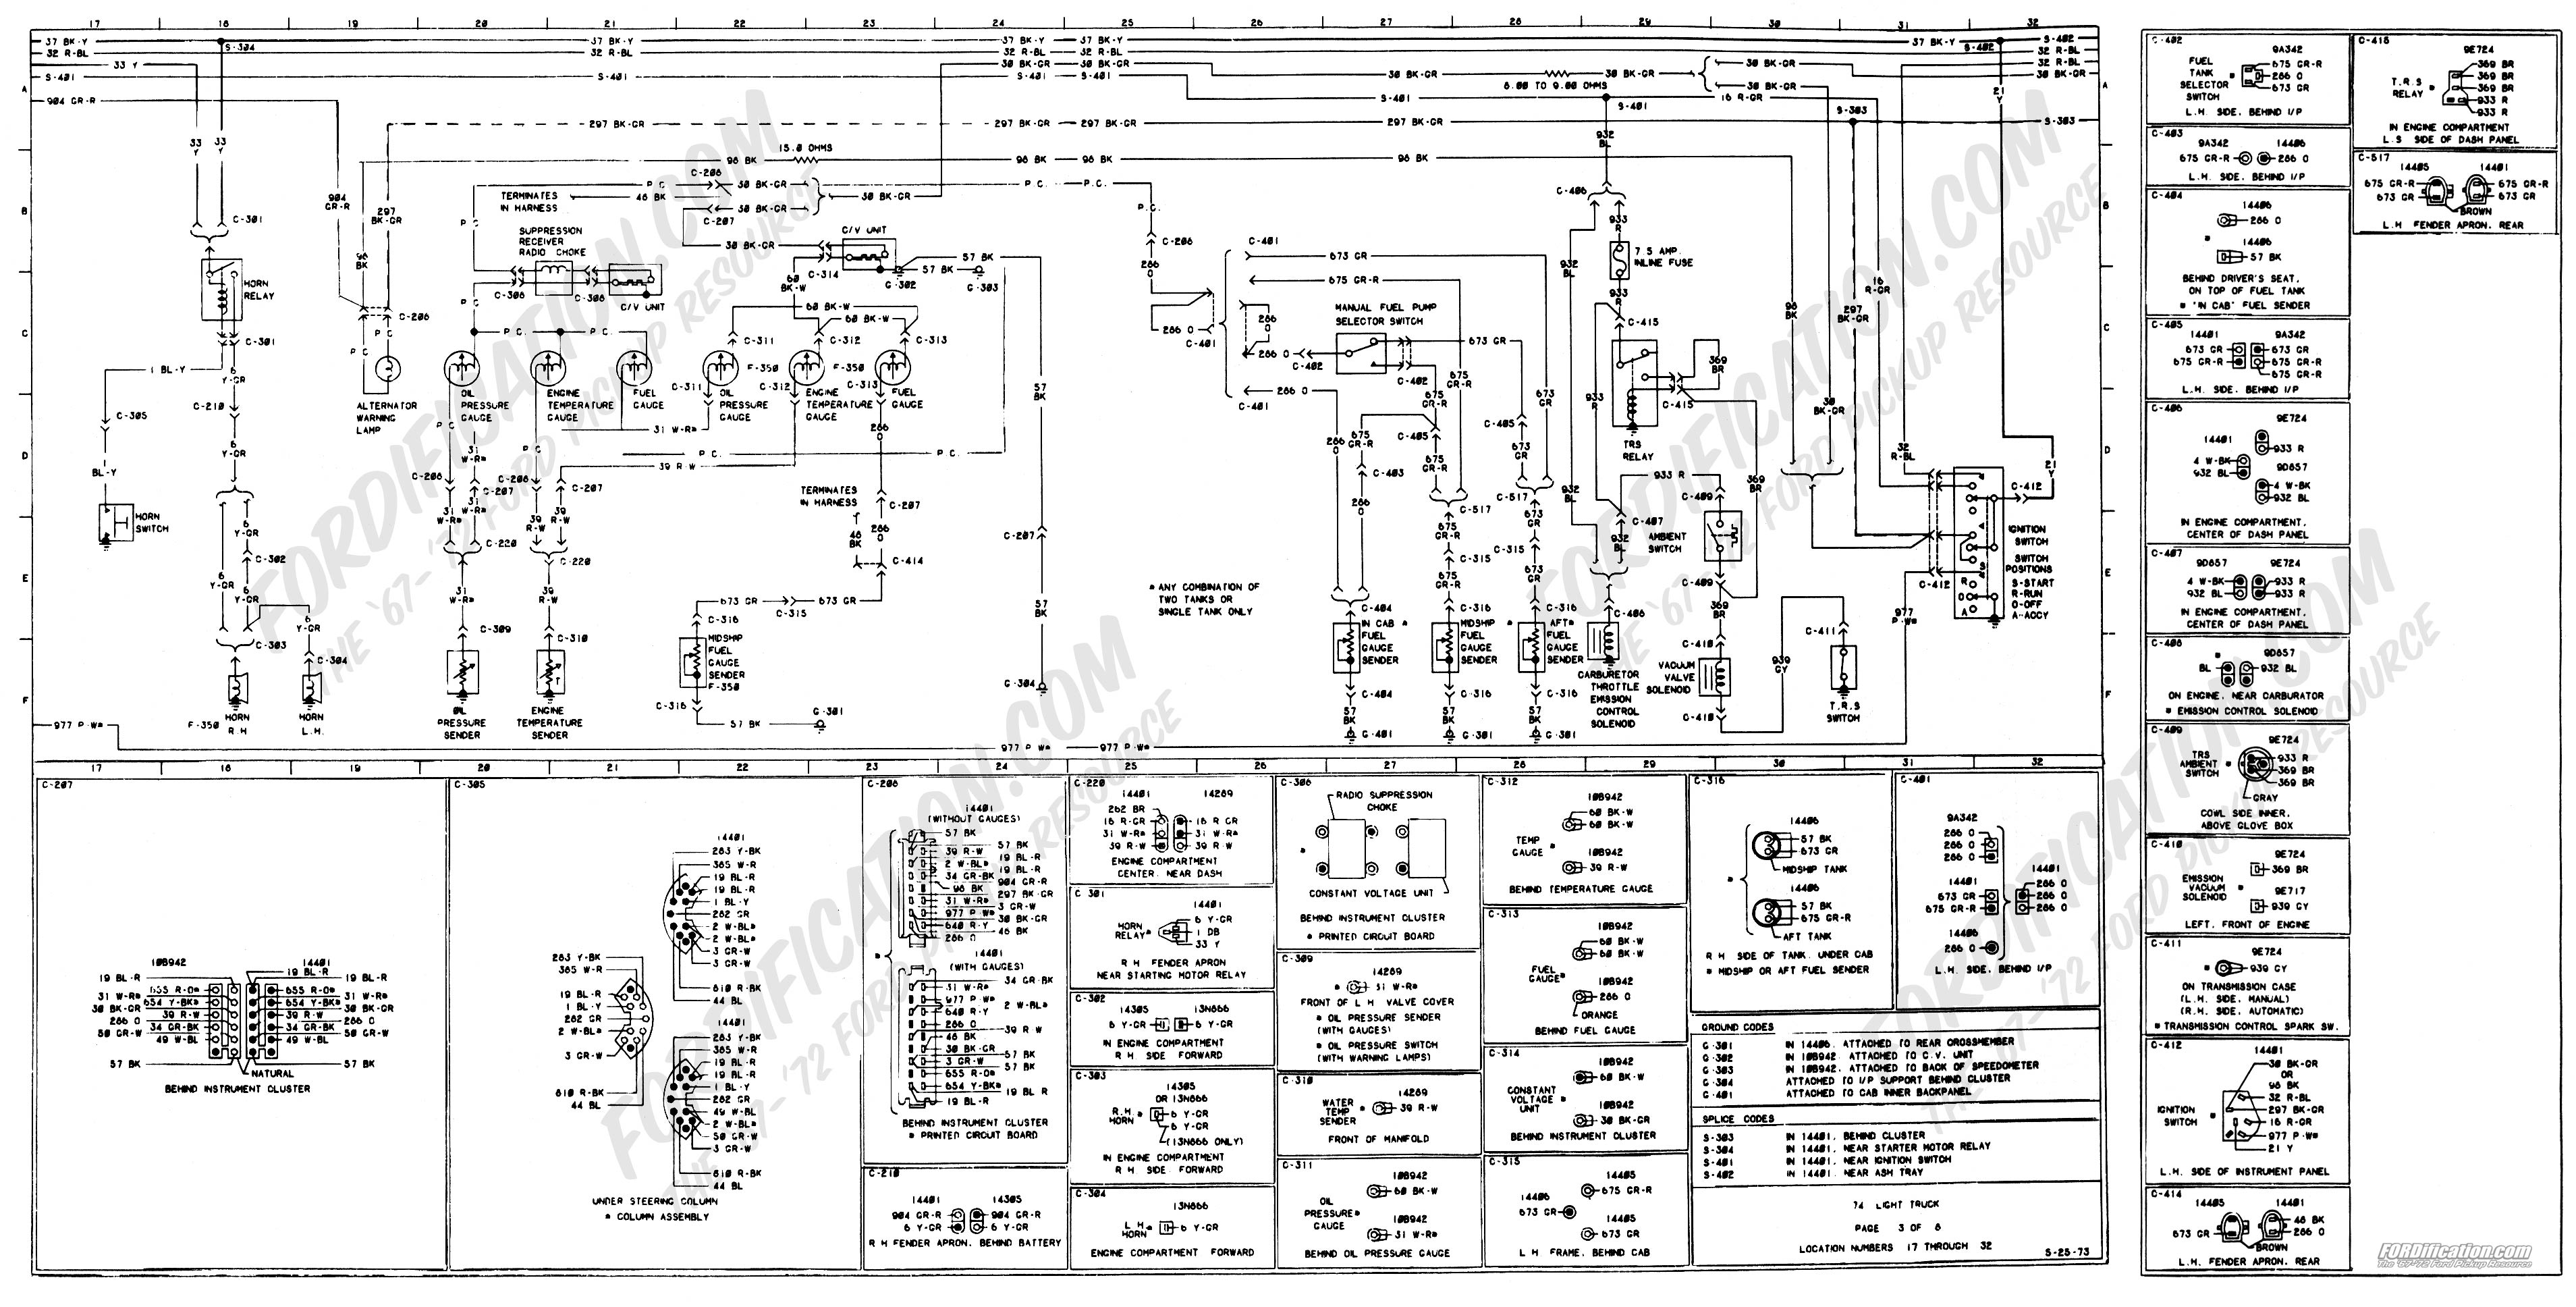 wiring_74master_3of8 1973 1979 ford truck wiring diagrams & schematics fordification net 2004 ford f350 wiring diagram at soozxer.org